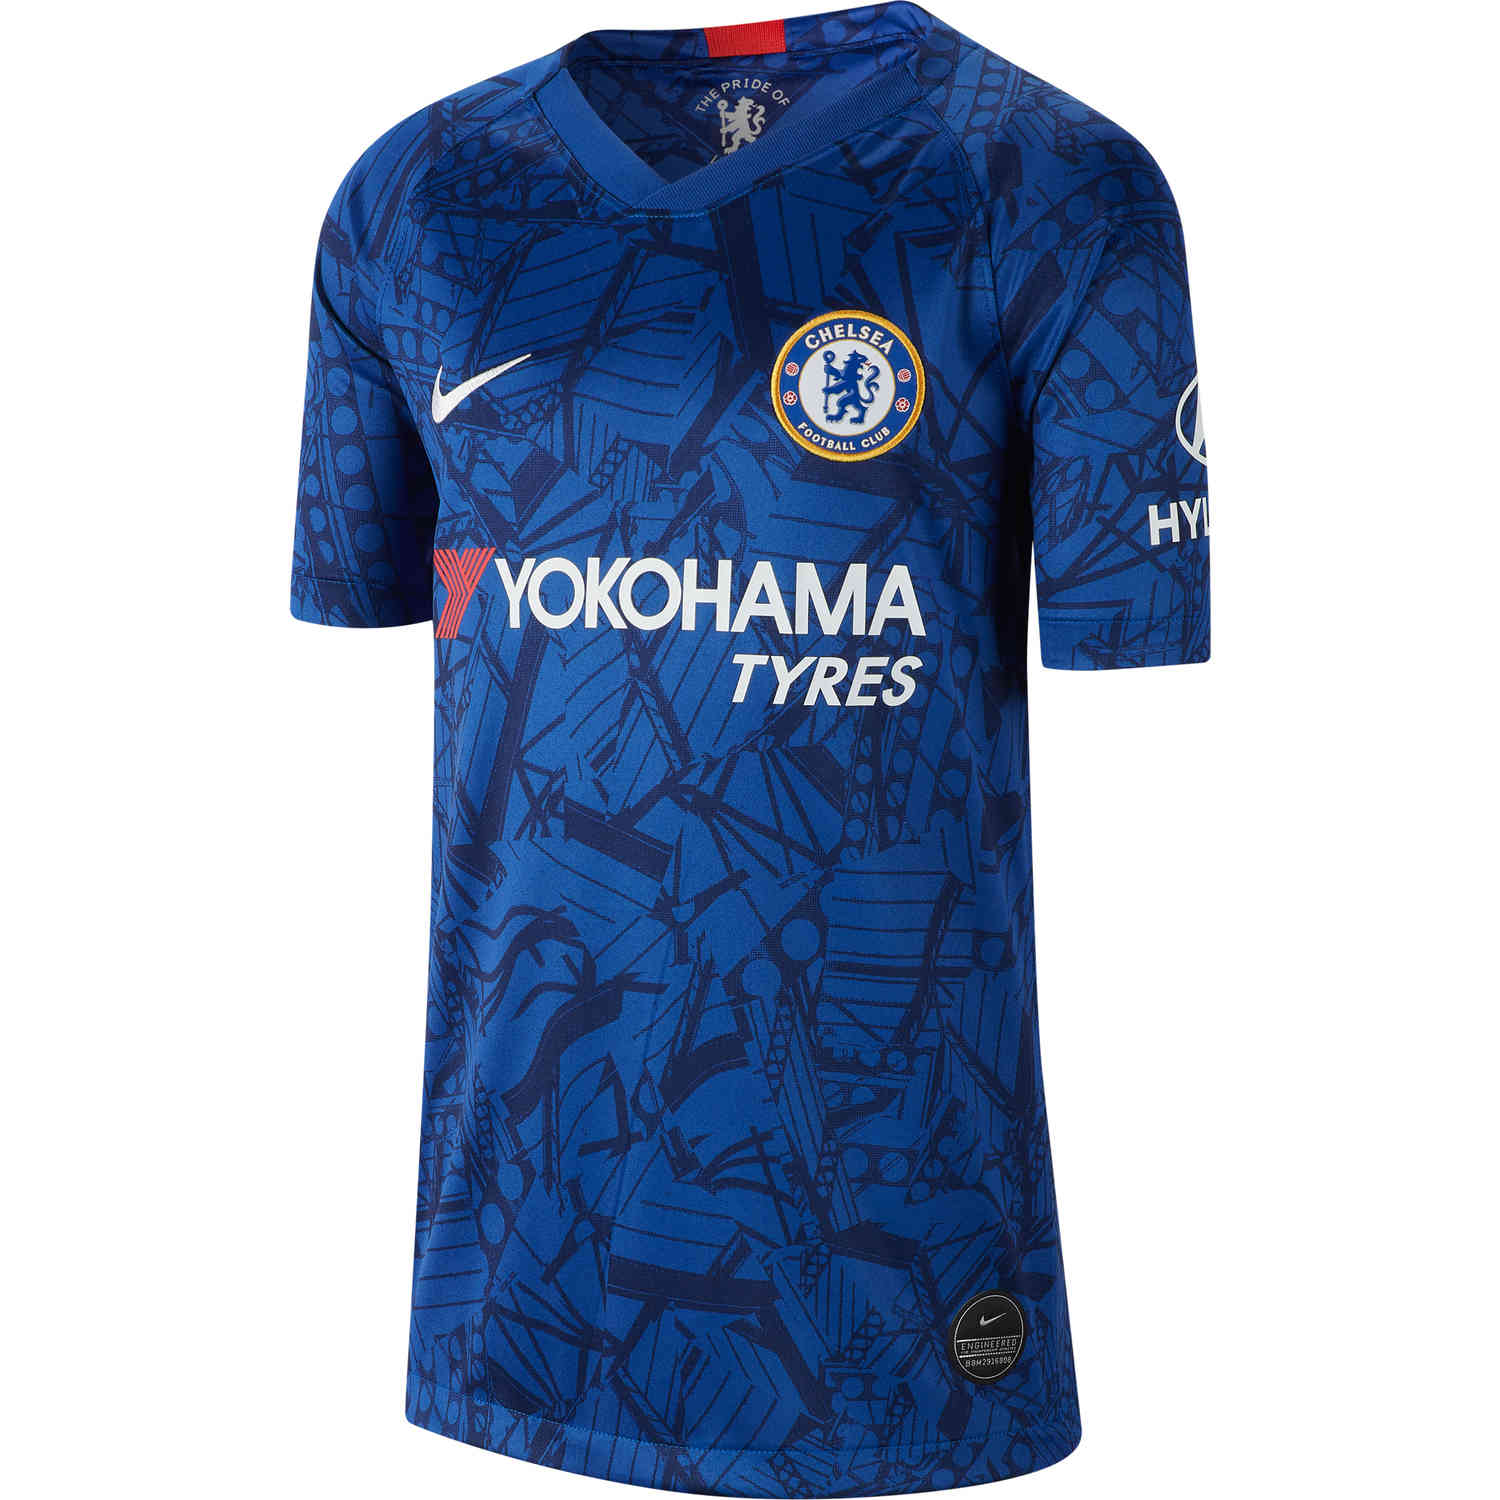 new products 5cda8 0e545 2019/20 Kids Christian Pulisic Chelsea Home Jersey - Soccer Master